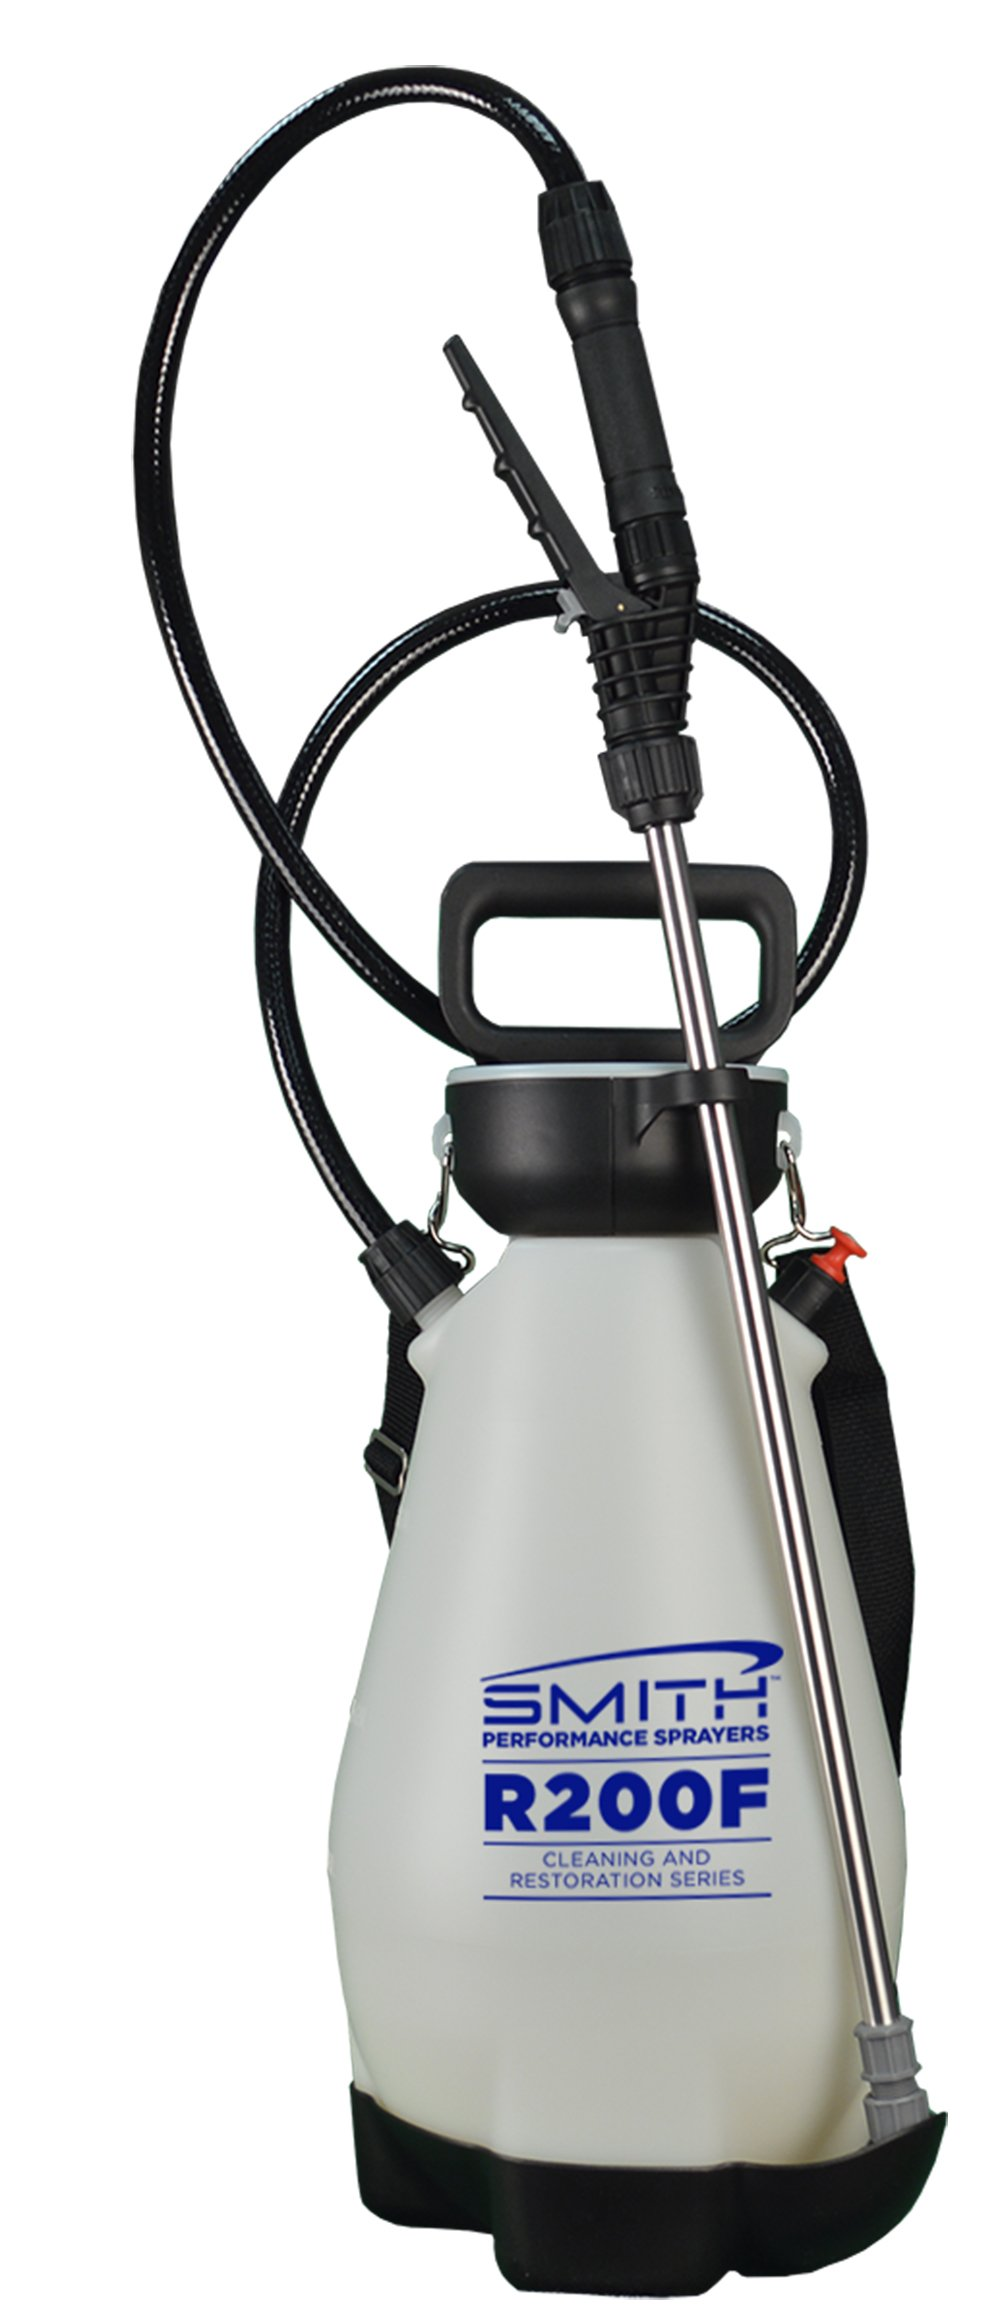 Smith Performance Sprayers R200F Foaming Compression Sprayer for Cleaning, 2 gallon